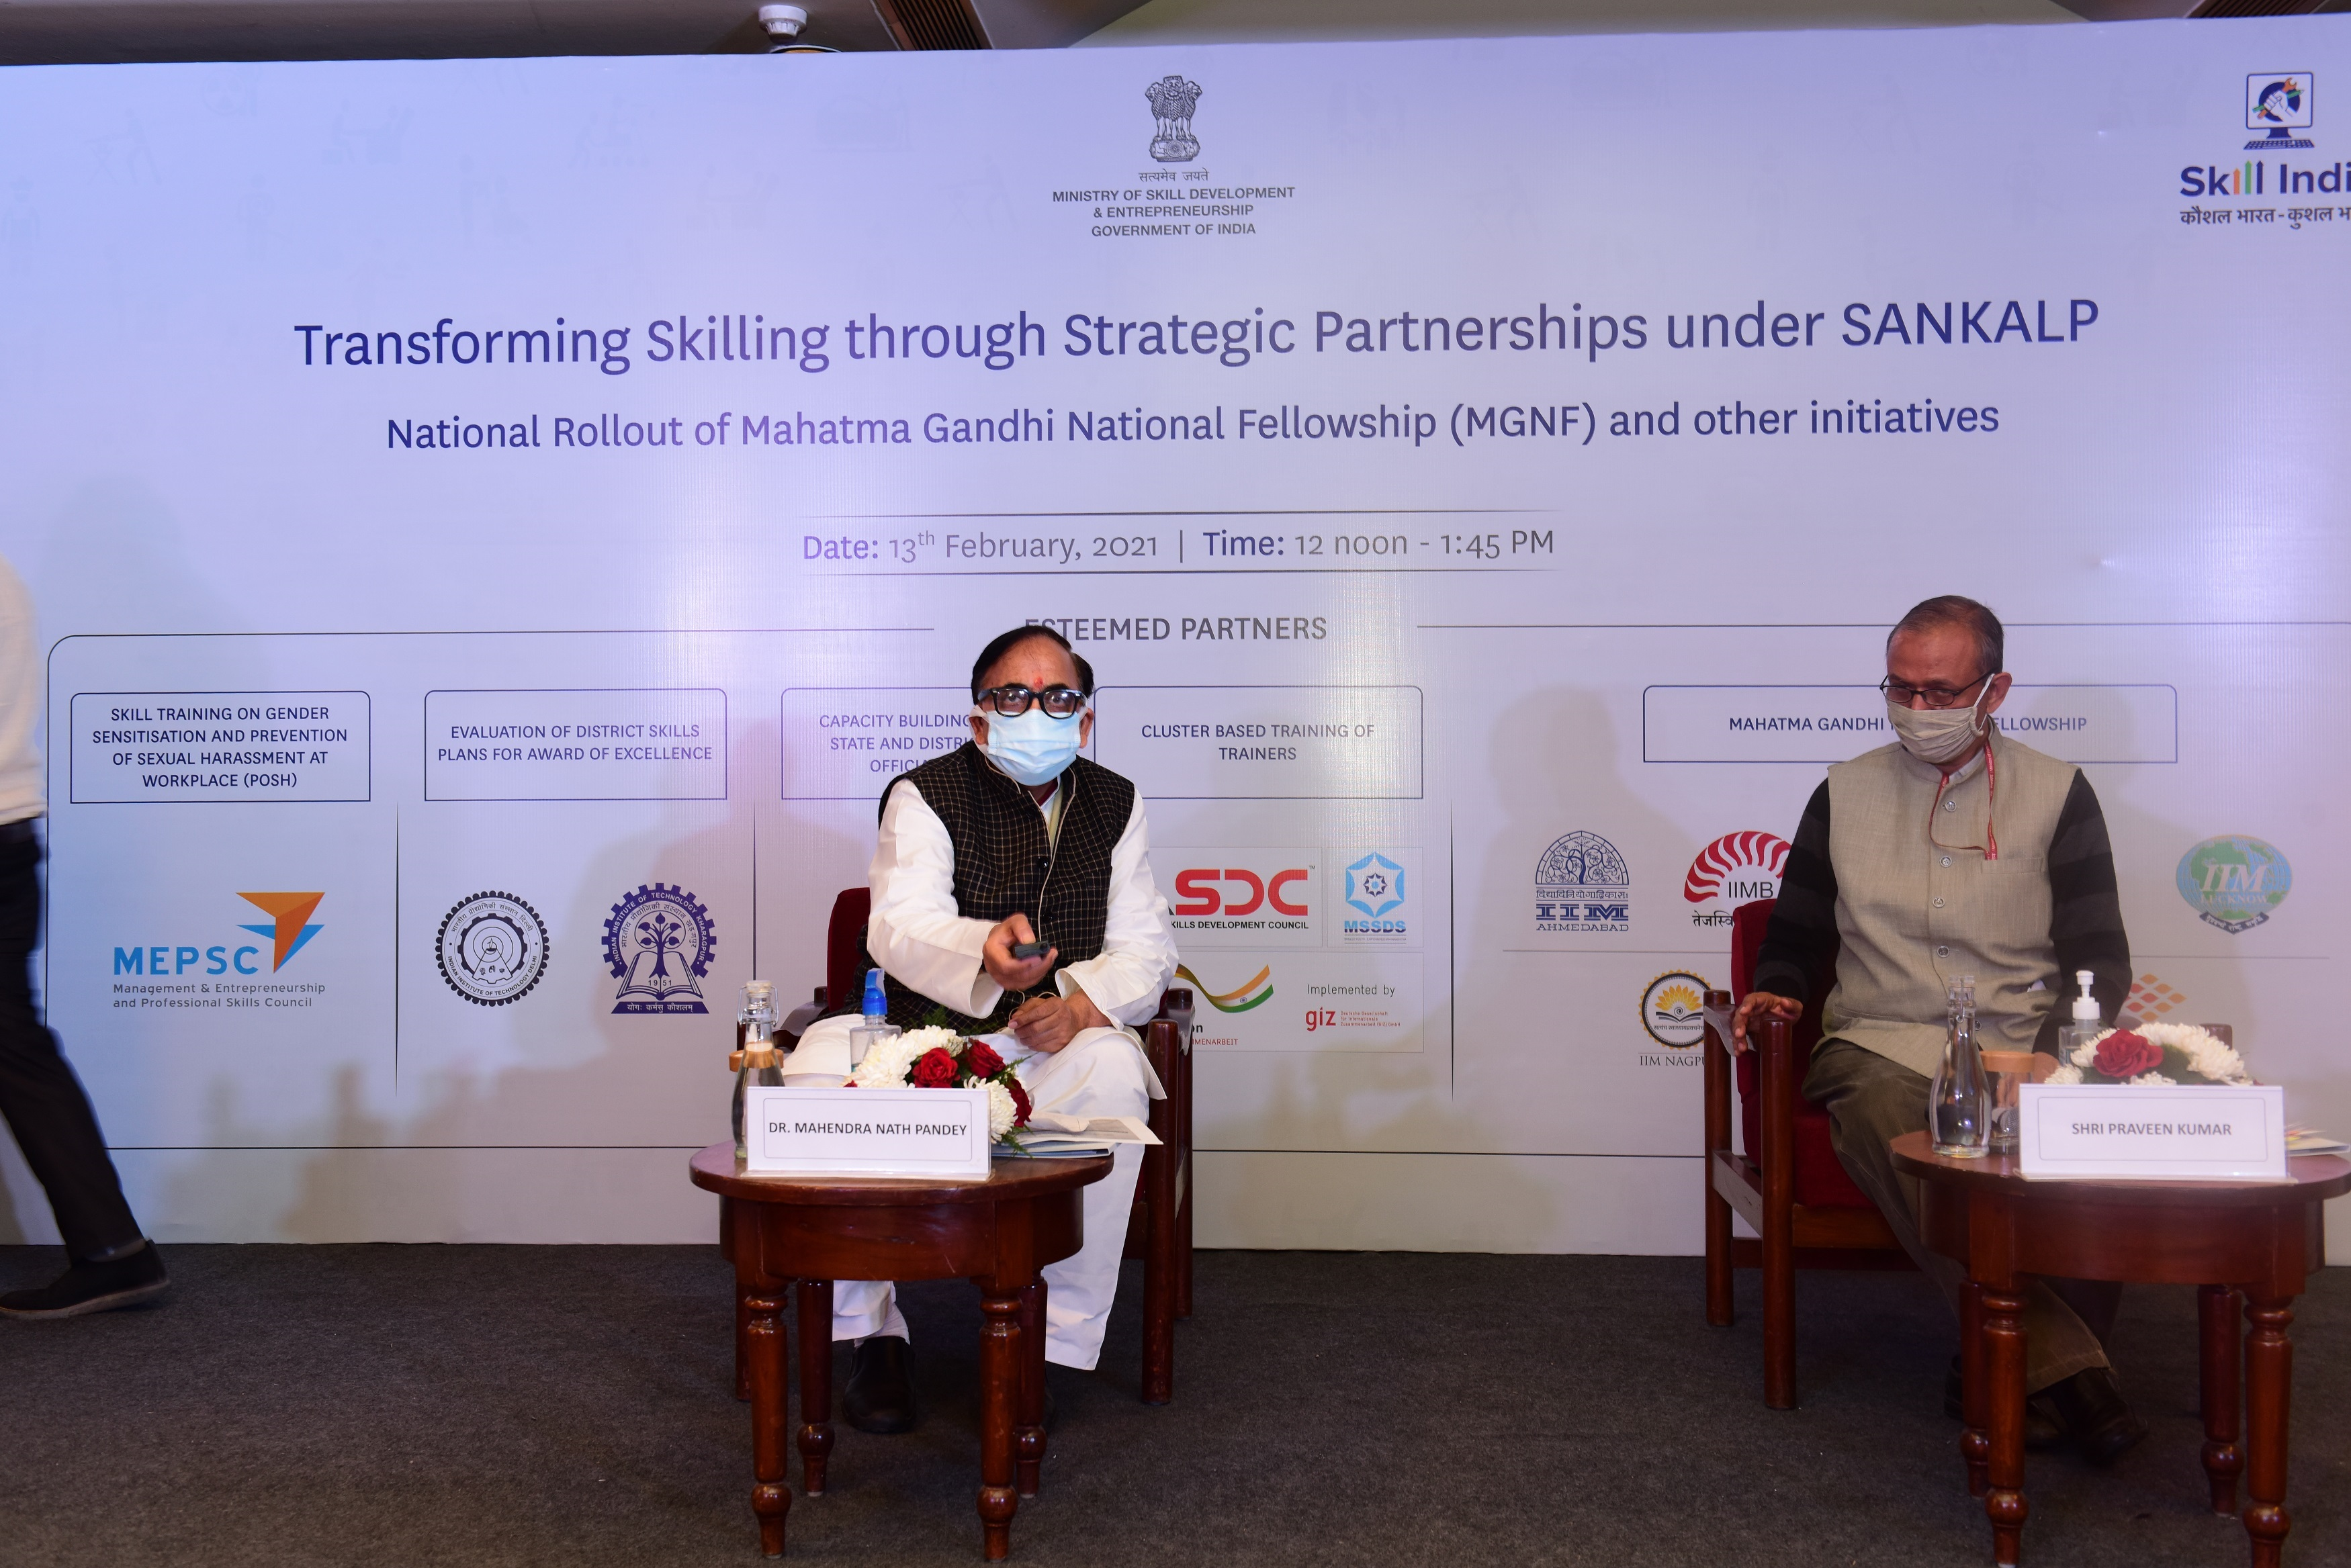 Sankalp : Developing the trainers in upcoming technologies required as per industry 4.0